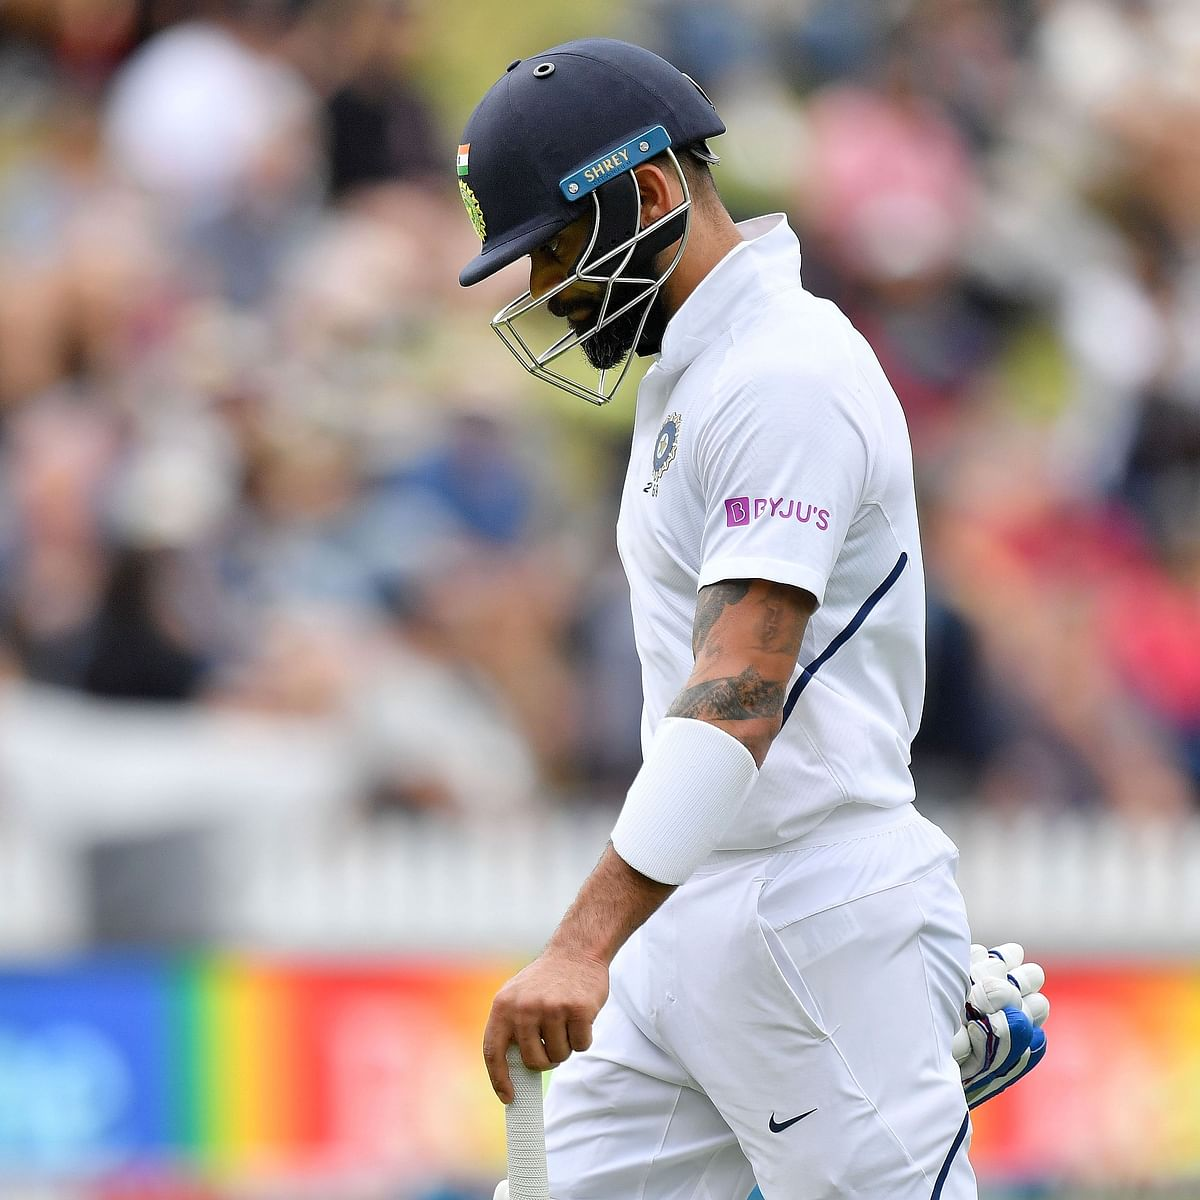 NZ vs IND 1st Test: Virat Kohli's woeful run of form continues